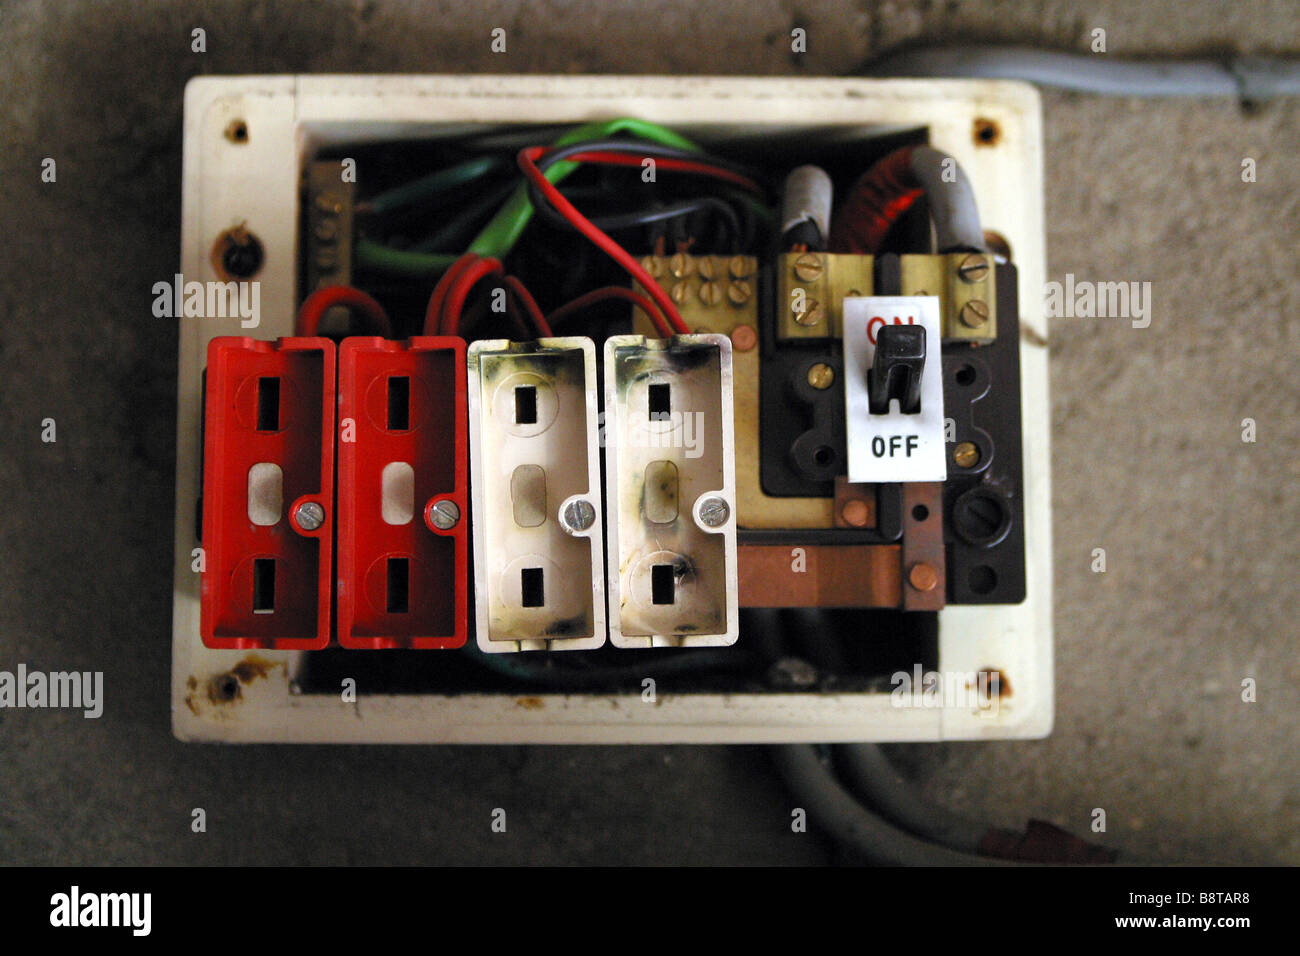 hight resolution of replacing old fuse box electrical wiring diagram old front door fuses for fuse box house simple